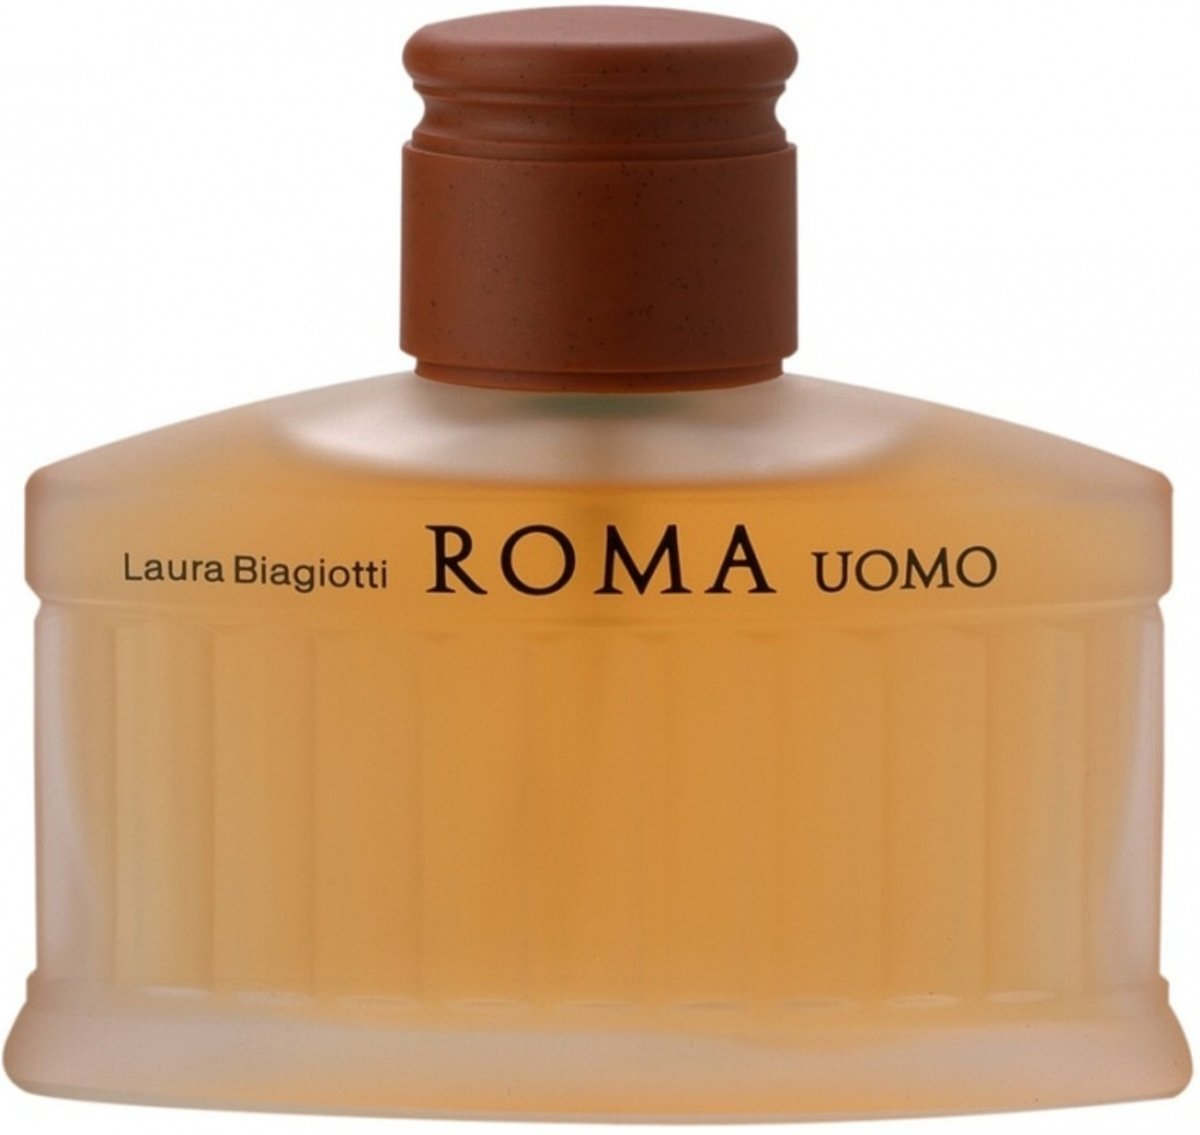 Laura Biagiotti Roma Uomo Edt Spray 75 ml